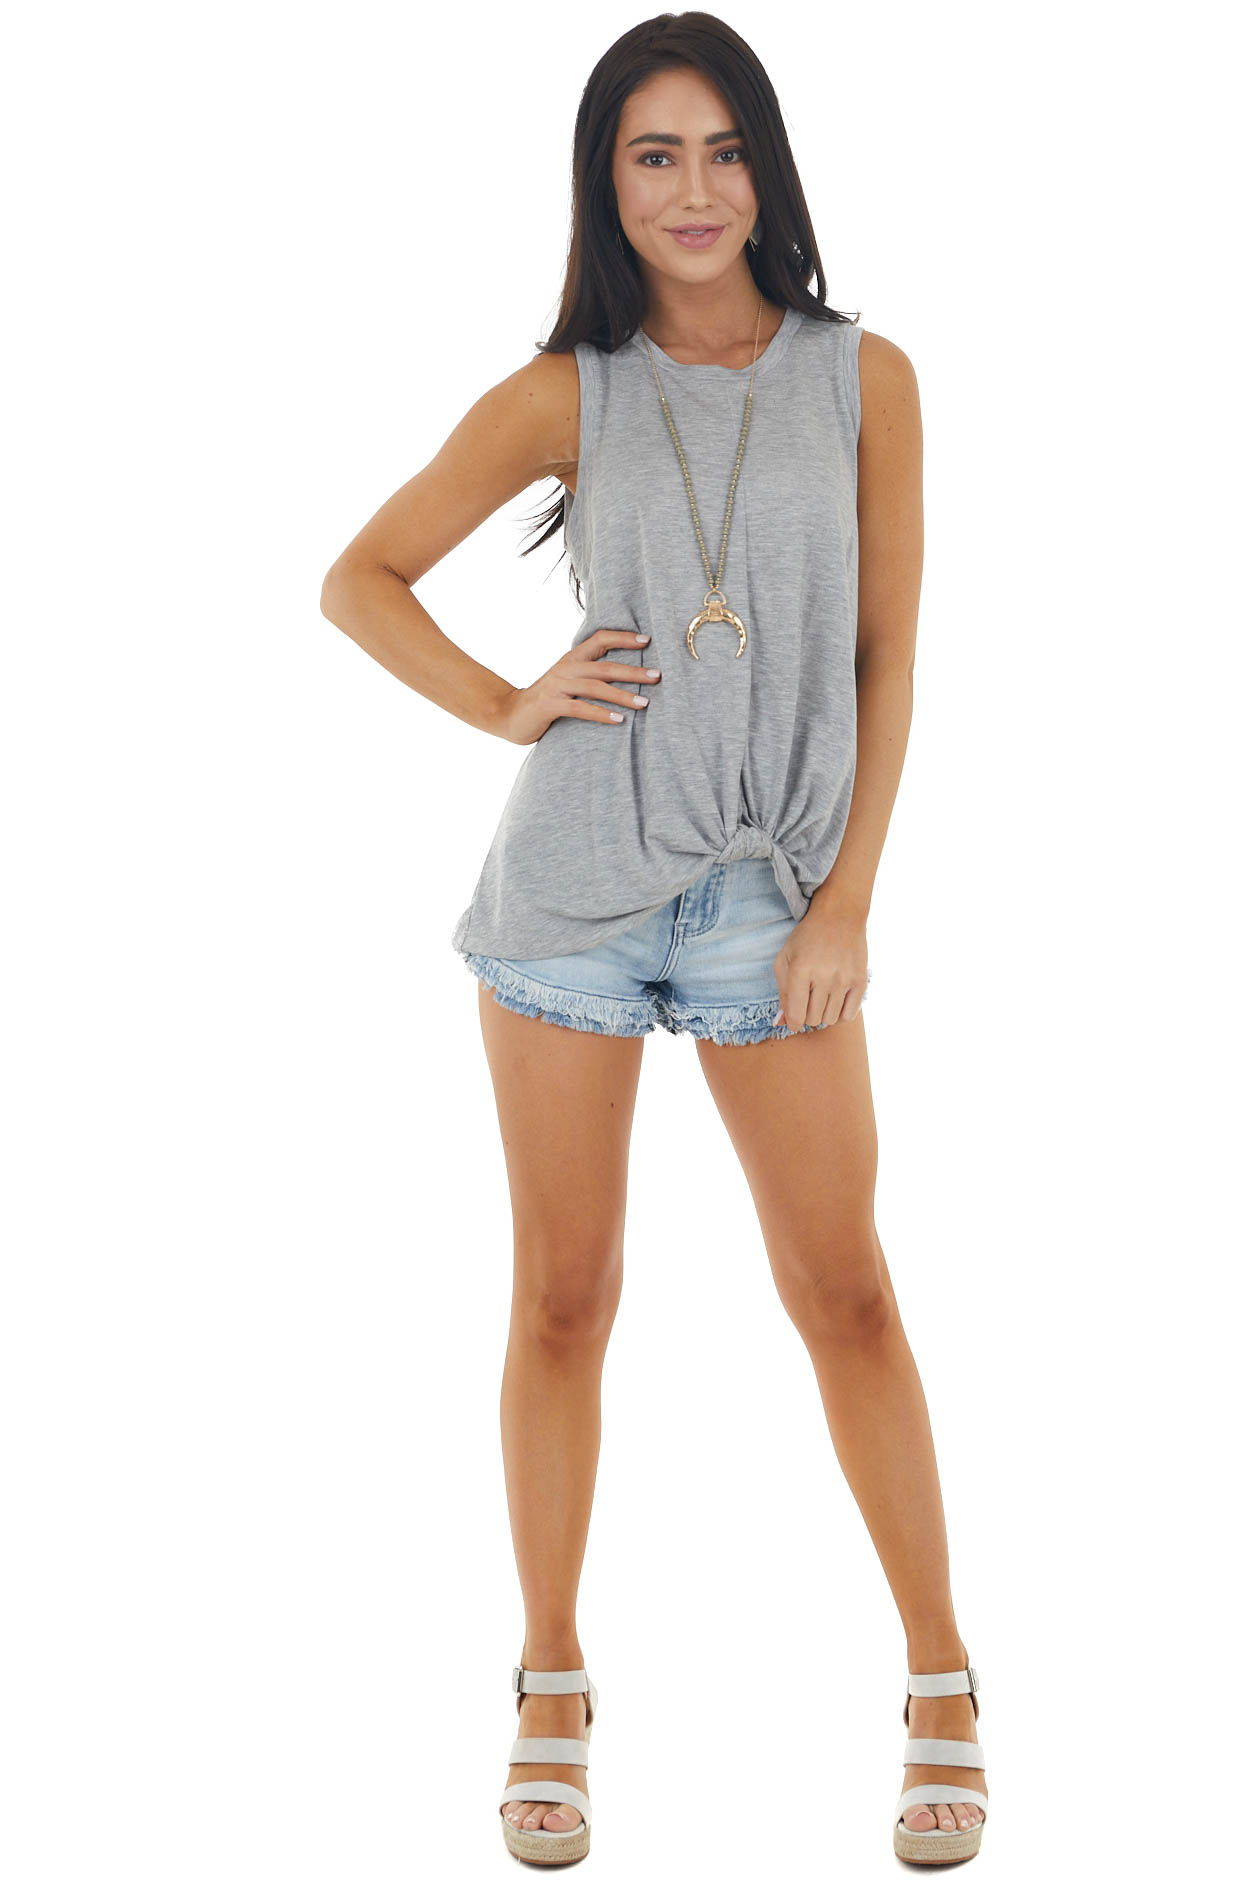 Heather Grey Sleeveless Knit Top with Front Knot Detail